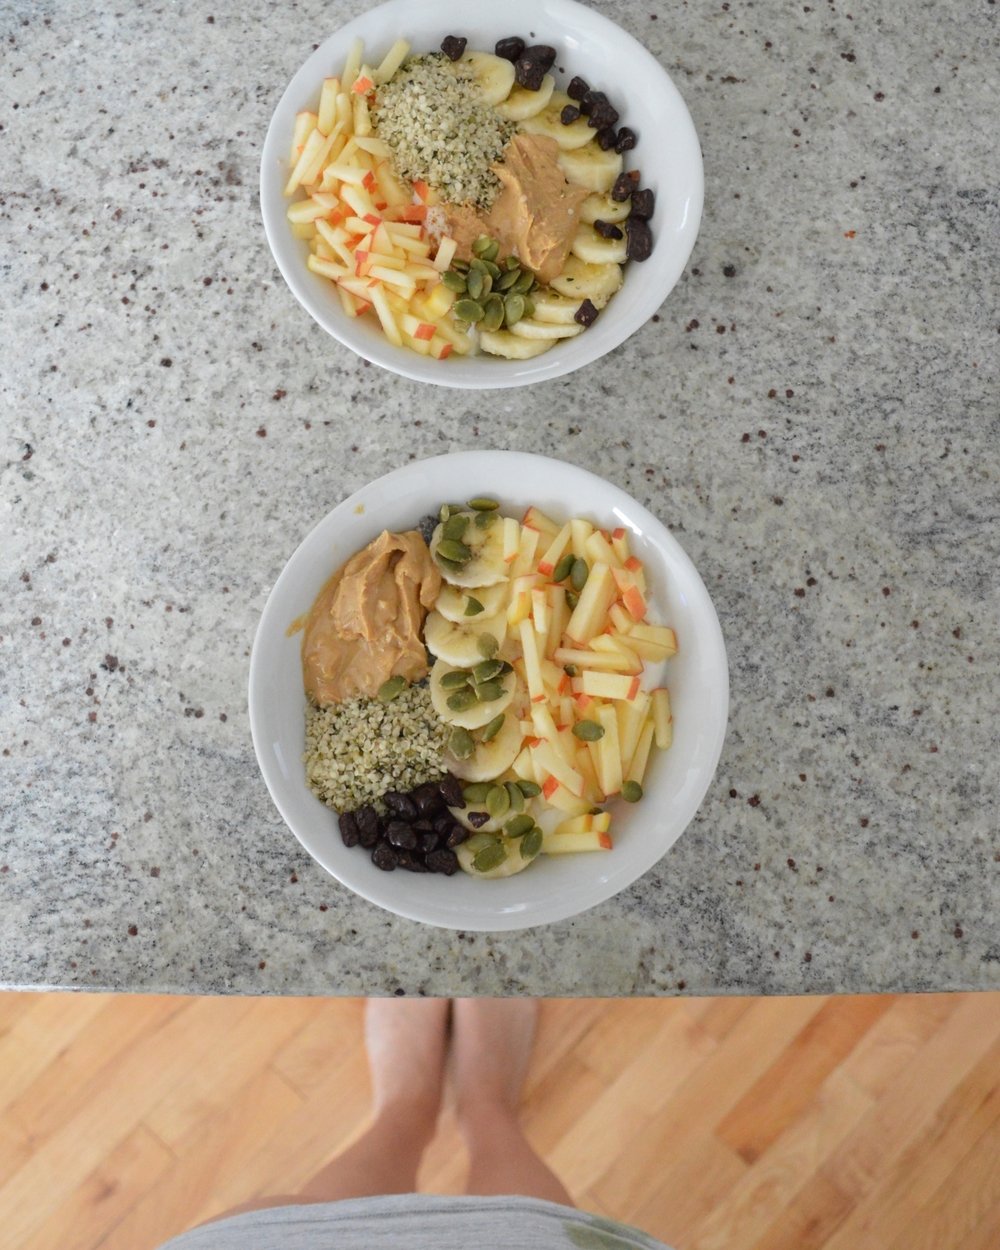 LaurenSchwaiger-Healthy-Life-Style-Blog-His-Hers-Superfoods-Breakfast-Bowls.jpg